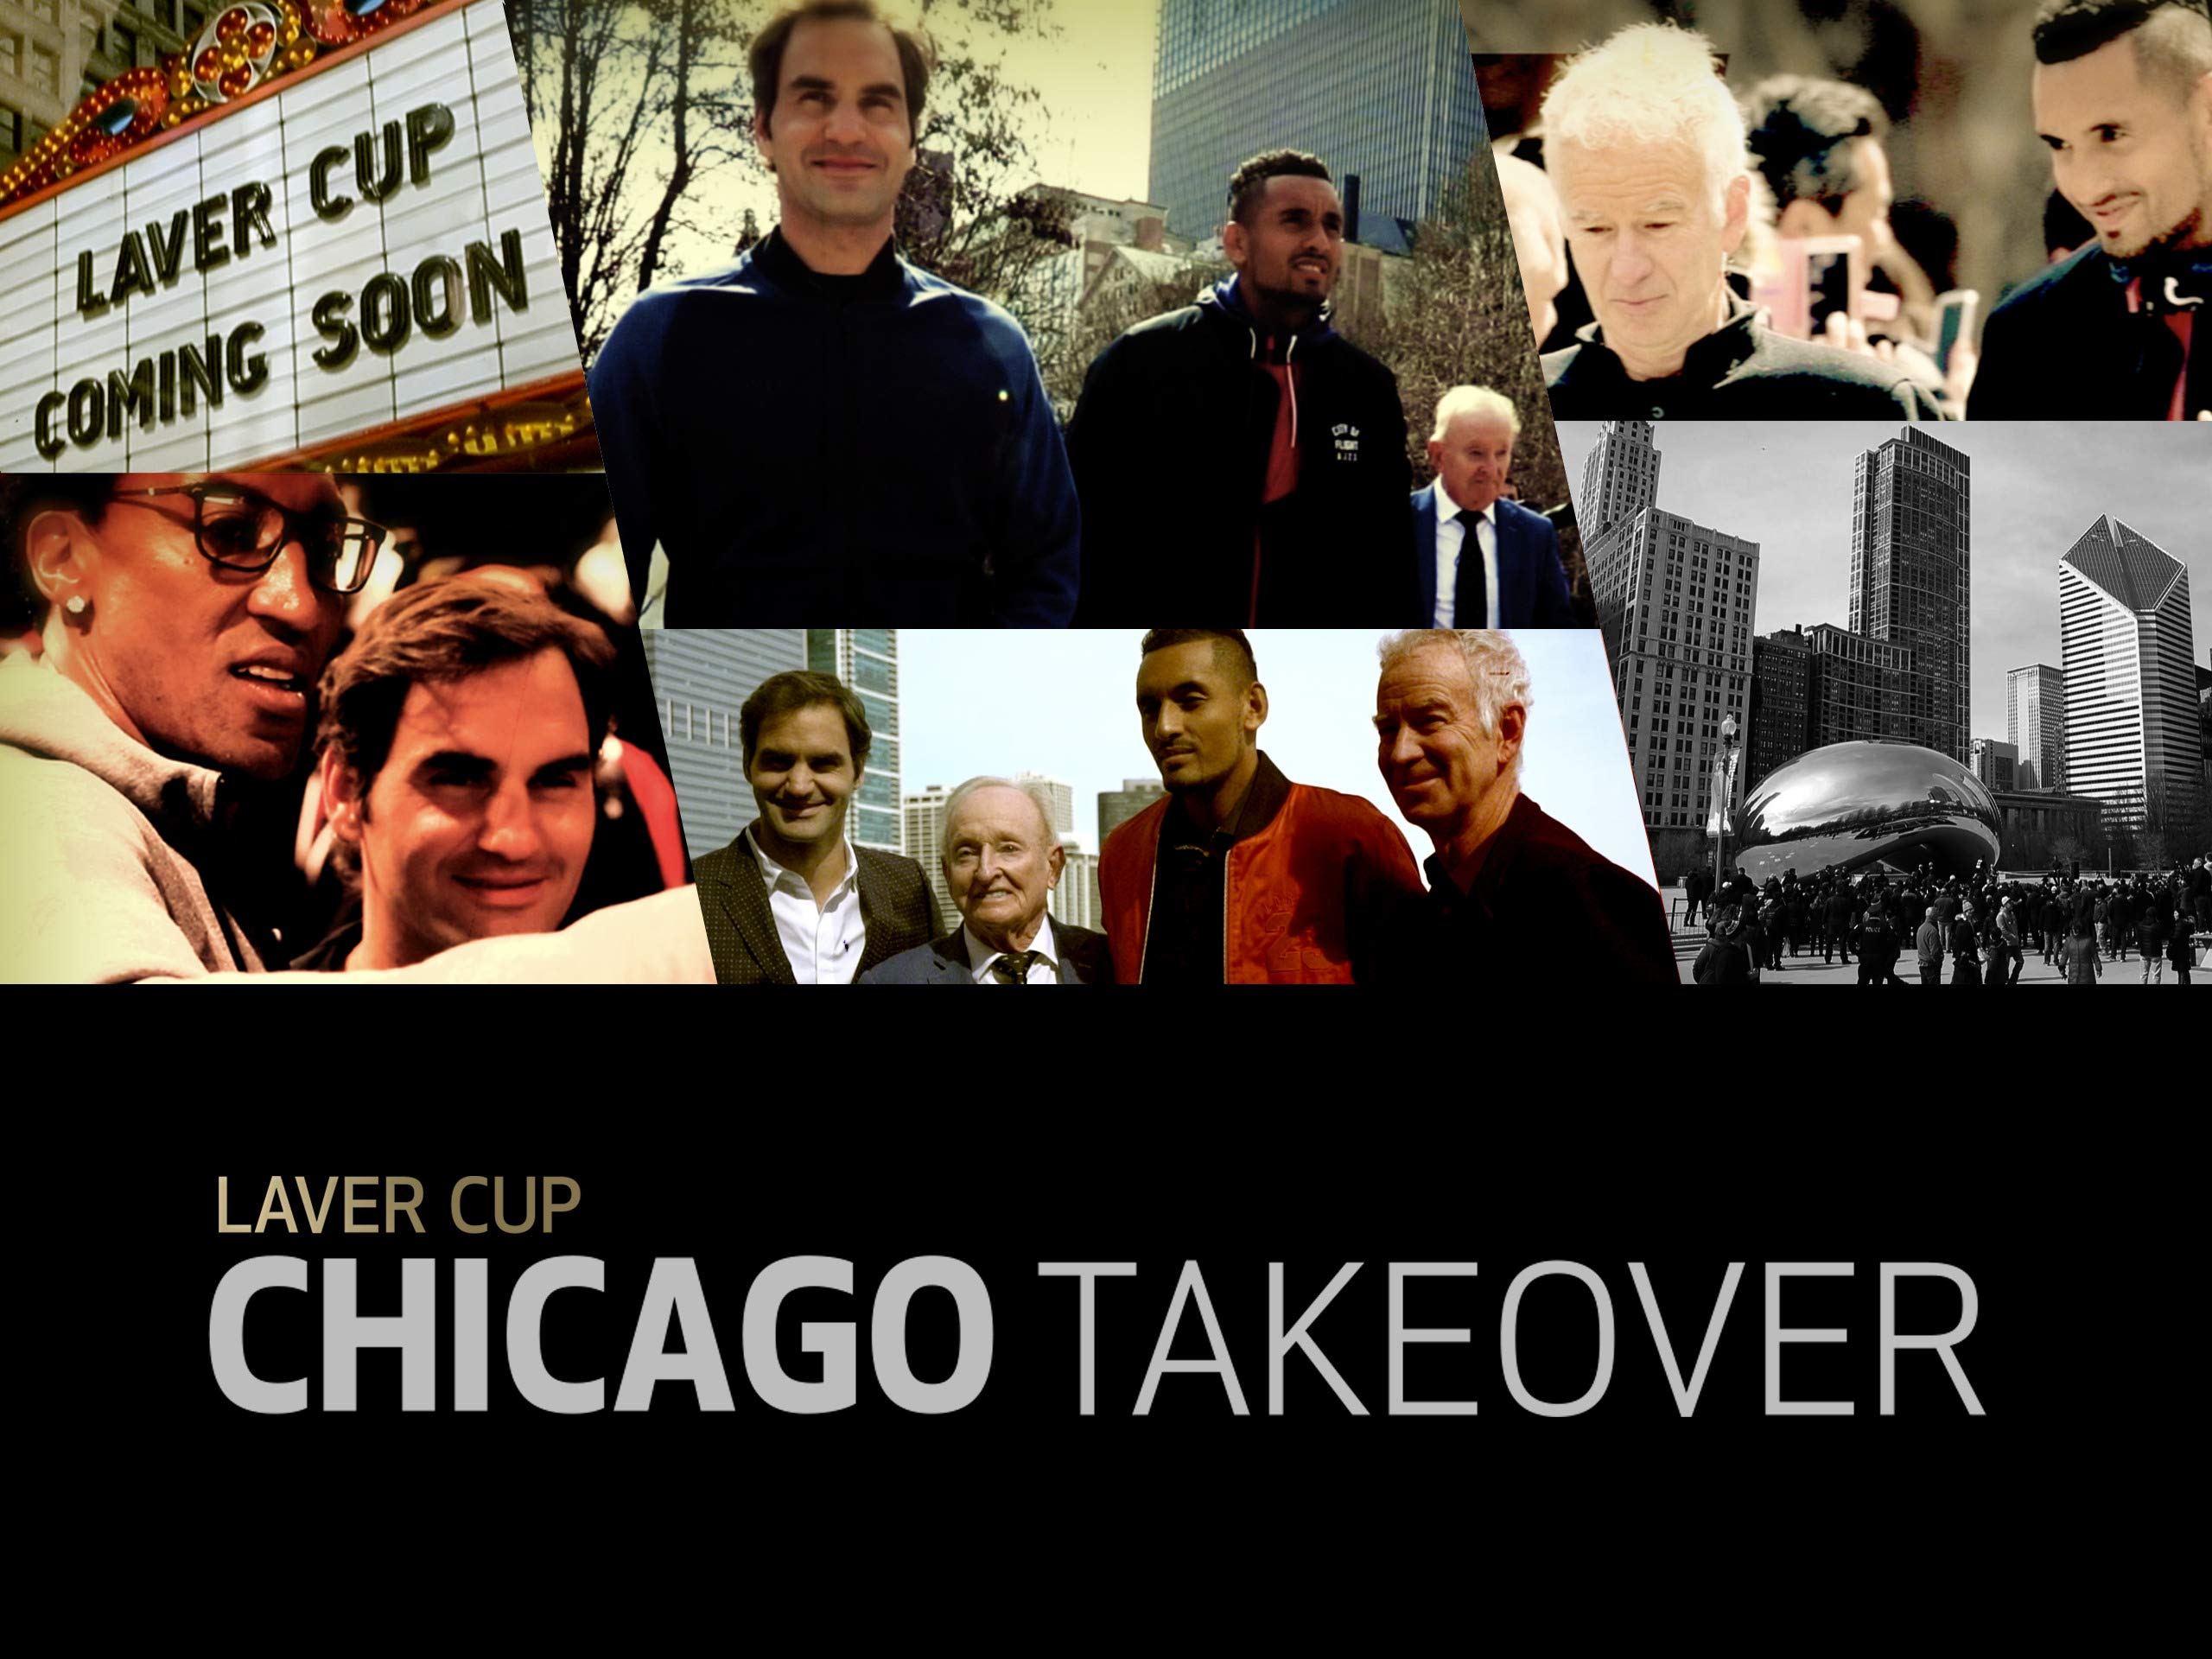 Laver Cup Chicago Takeover - Season 1